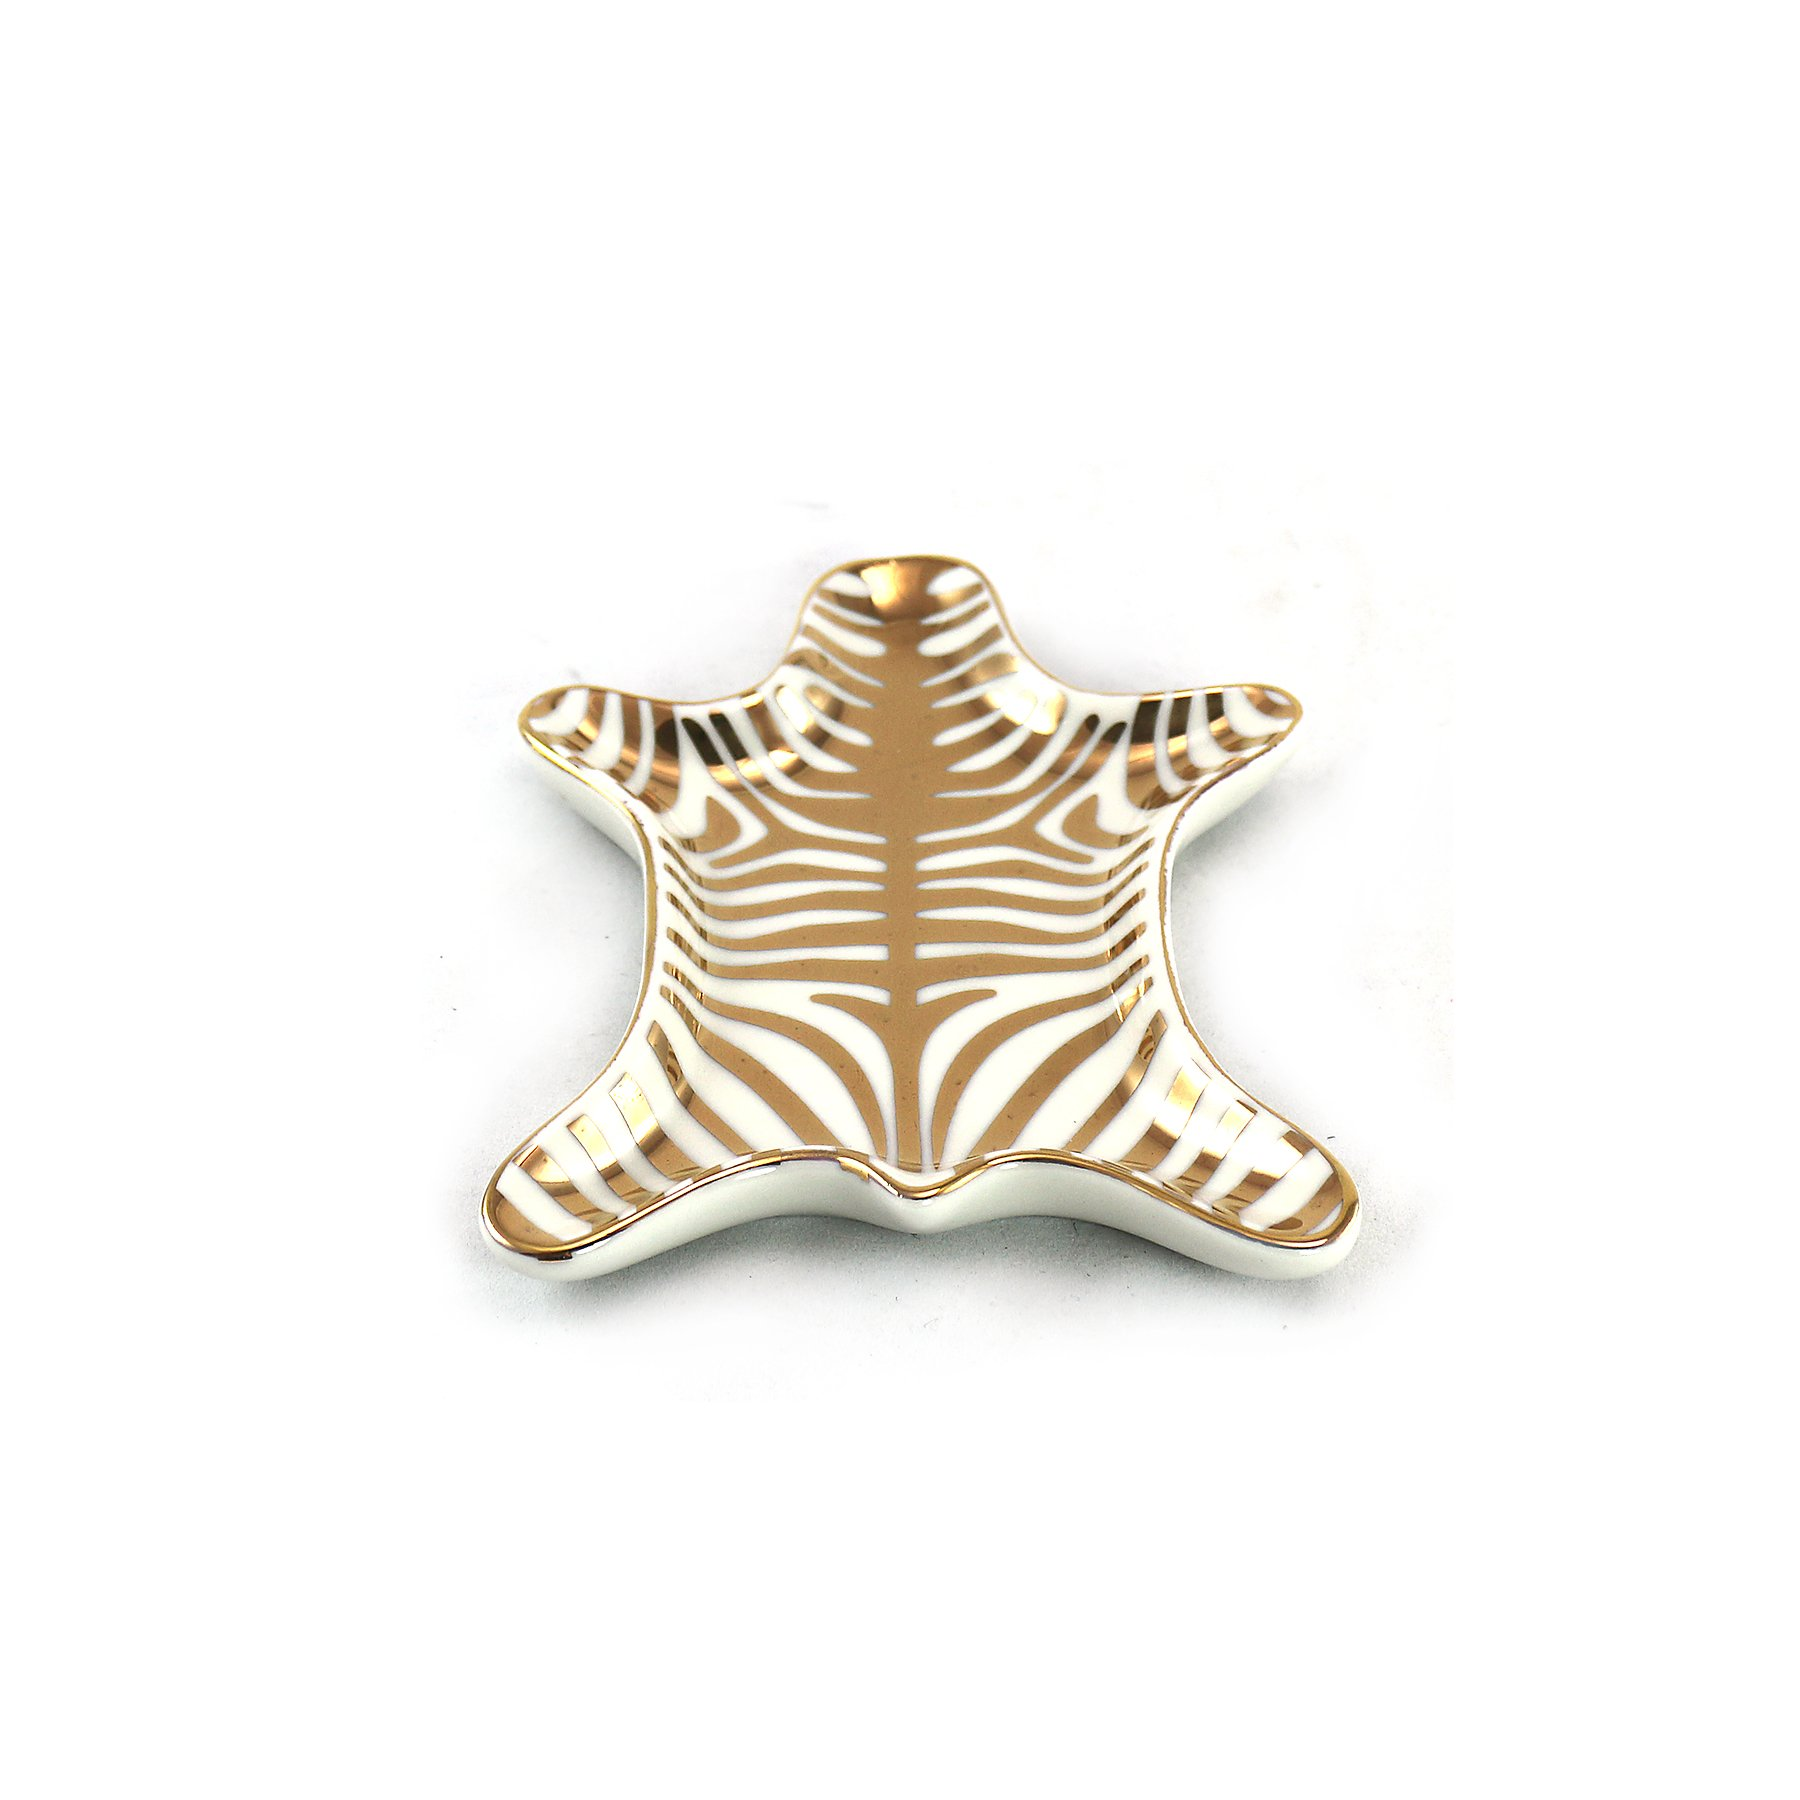 Stylish Gold and White Zebra Skin Ring Holder by WonderMolly